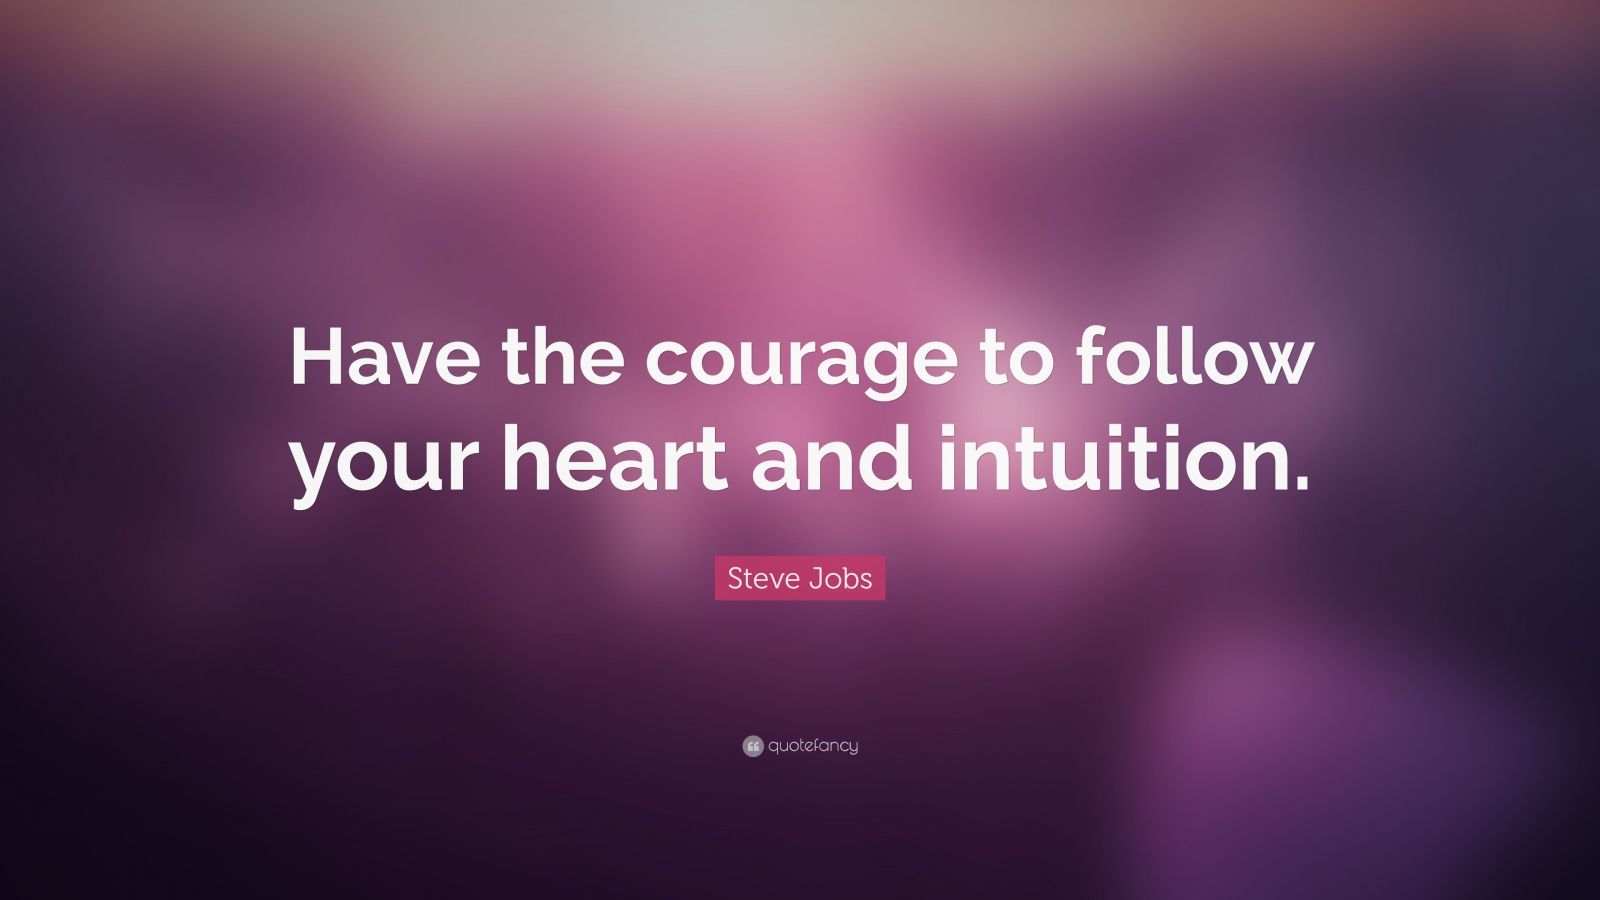 Steve Jobs Quote Have The Courage To Follow Your Heart And Intuition 27 Wallpapers